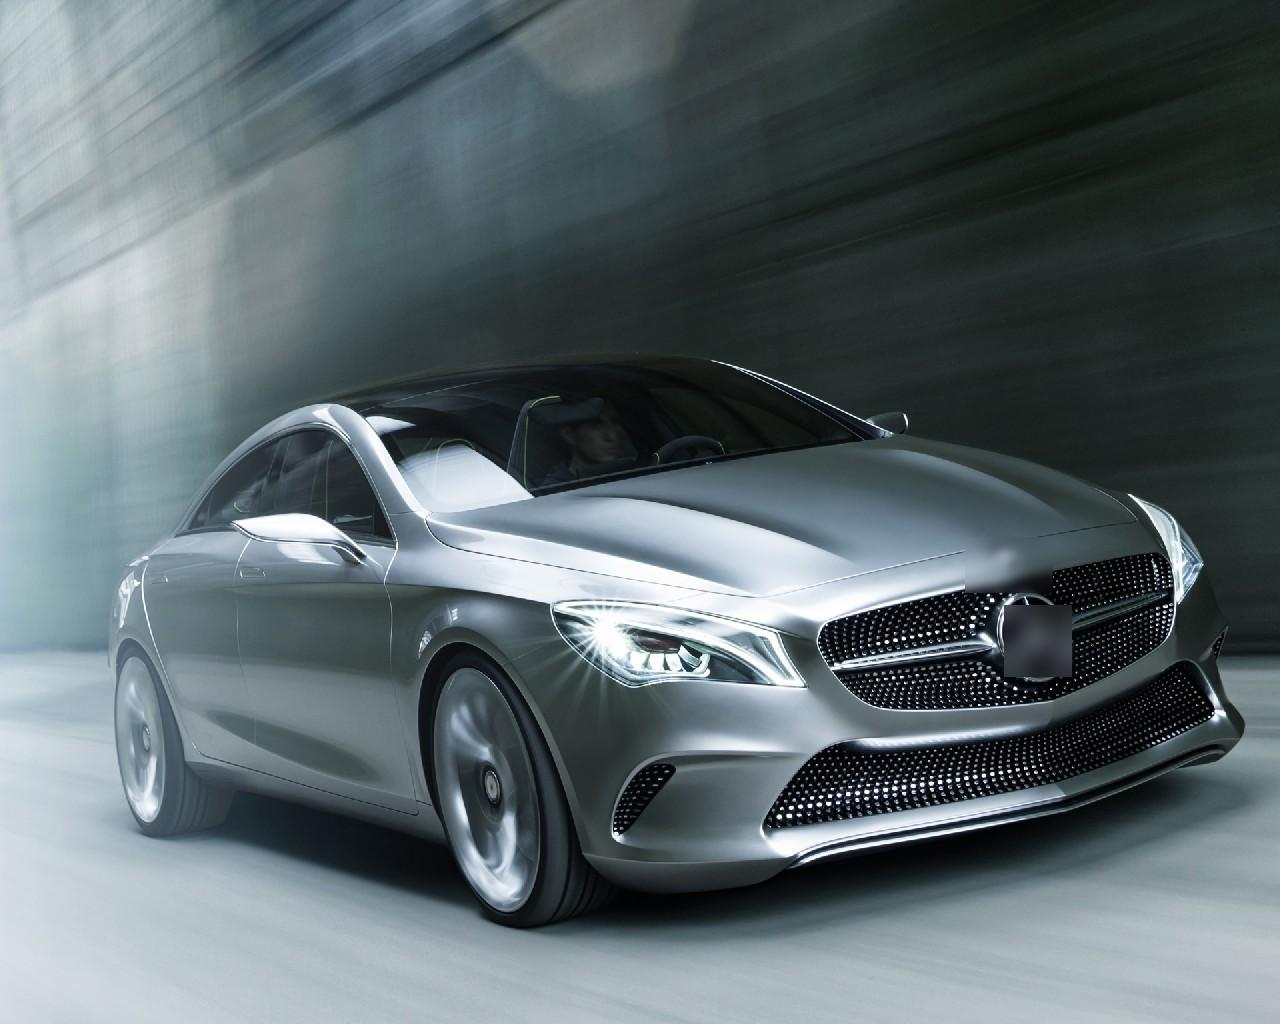 Car Wallpaper Mercedes CLA Kl for Android   APK Download 1280x1024